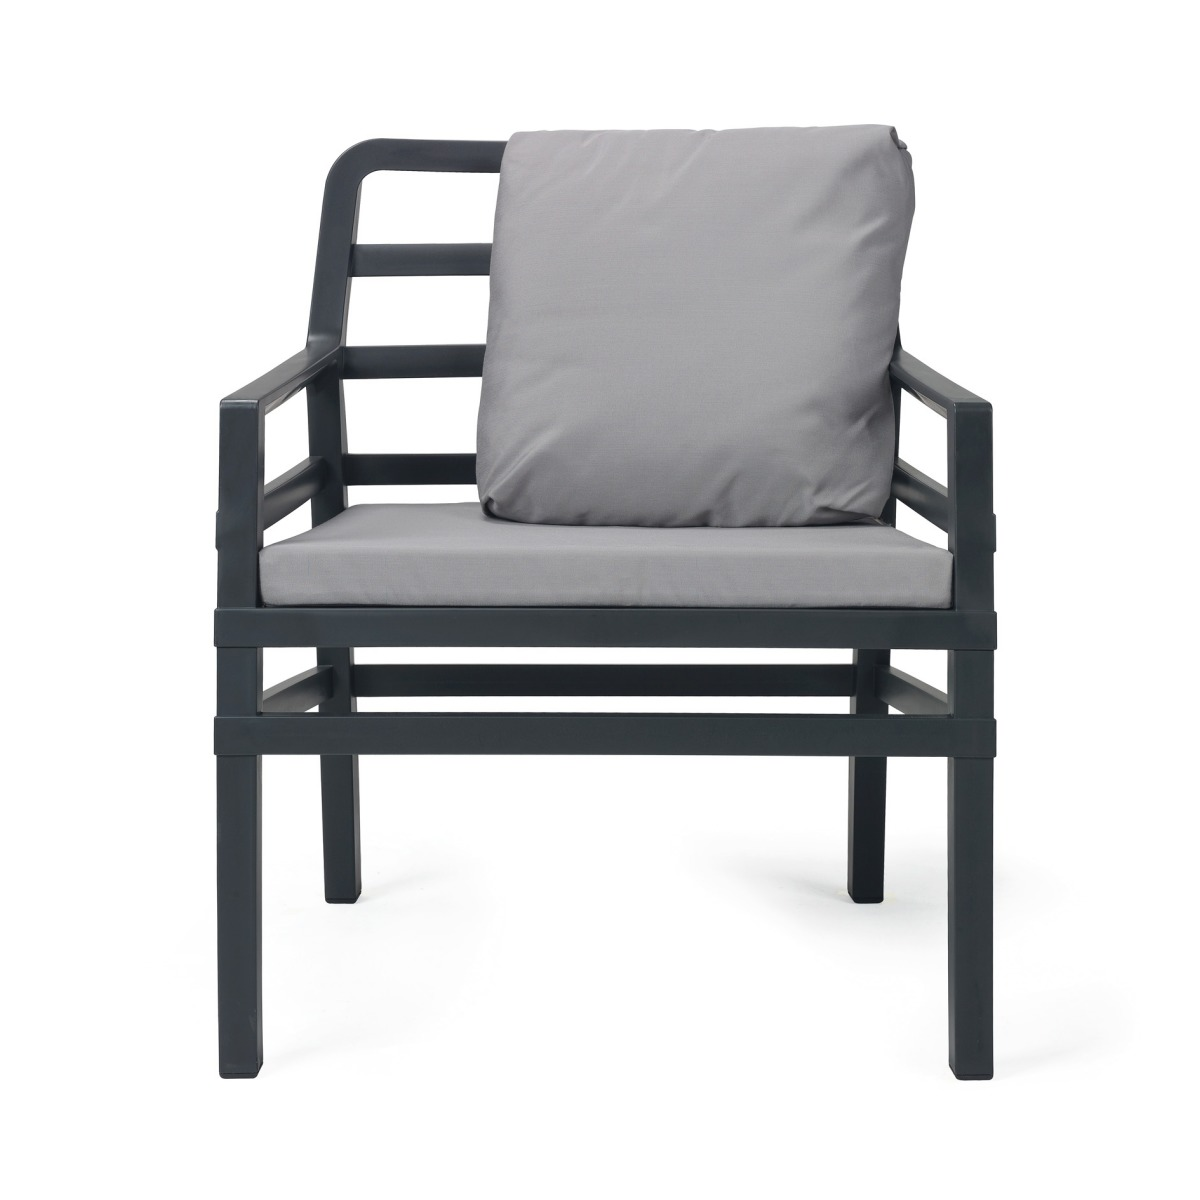 Outdoor Lounge Nz Aria Patio Arm Chair Nz Bydezign Furniture